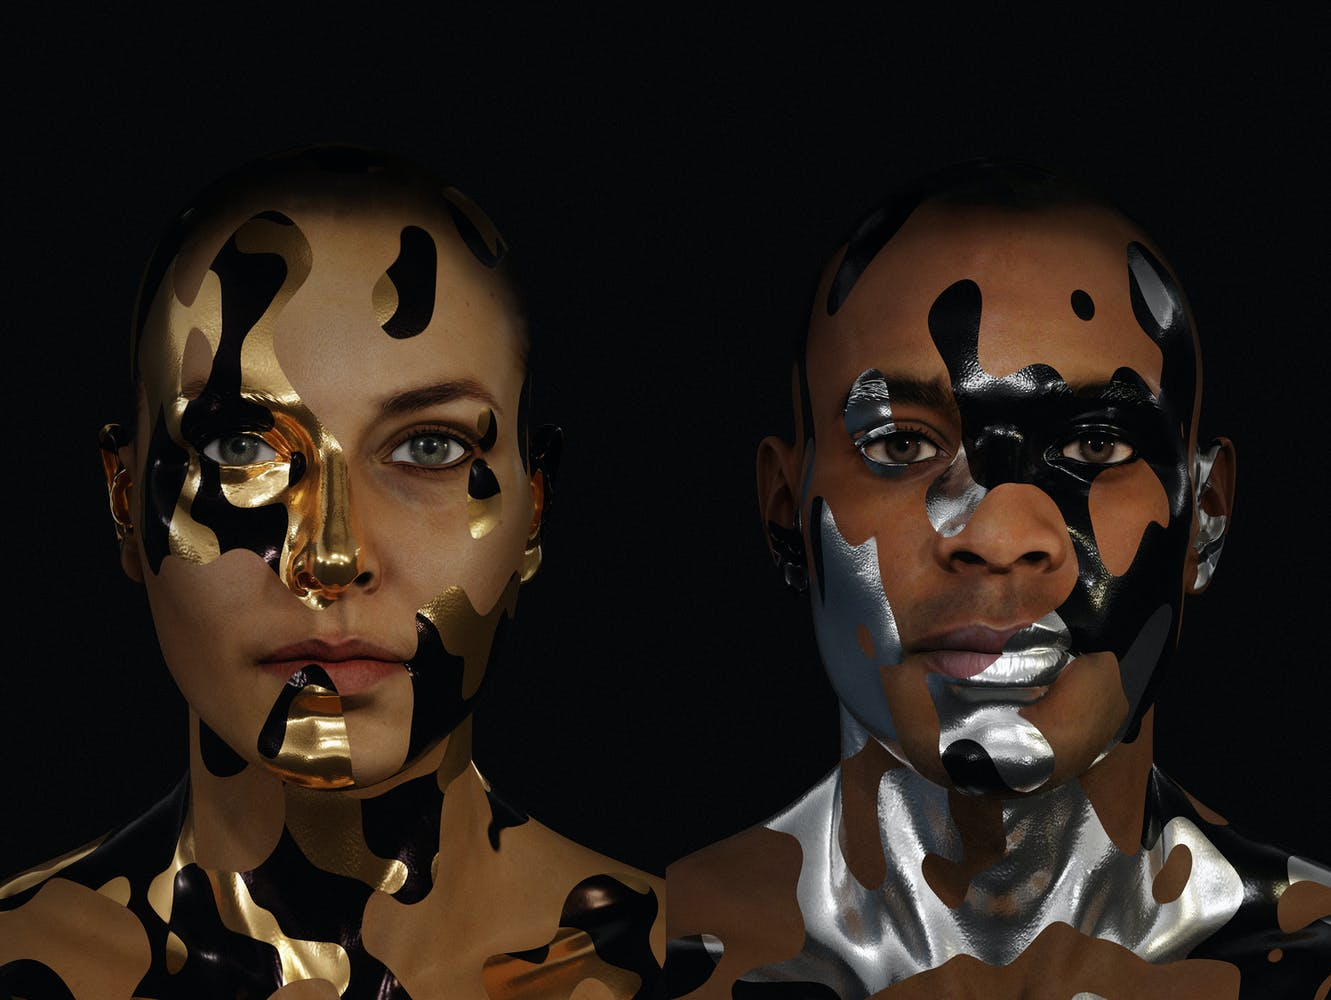 Image of woman and man with metallic camouflage-like face paint